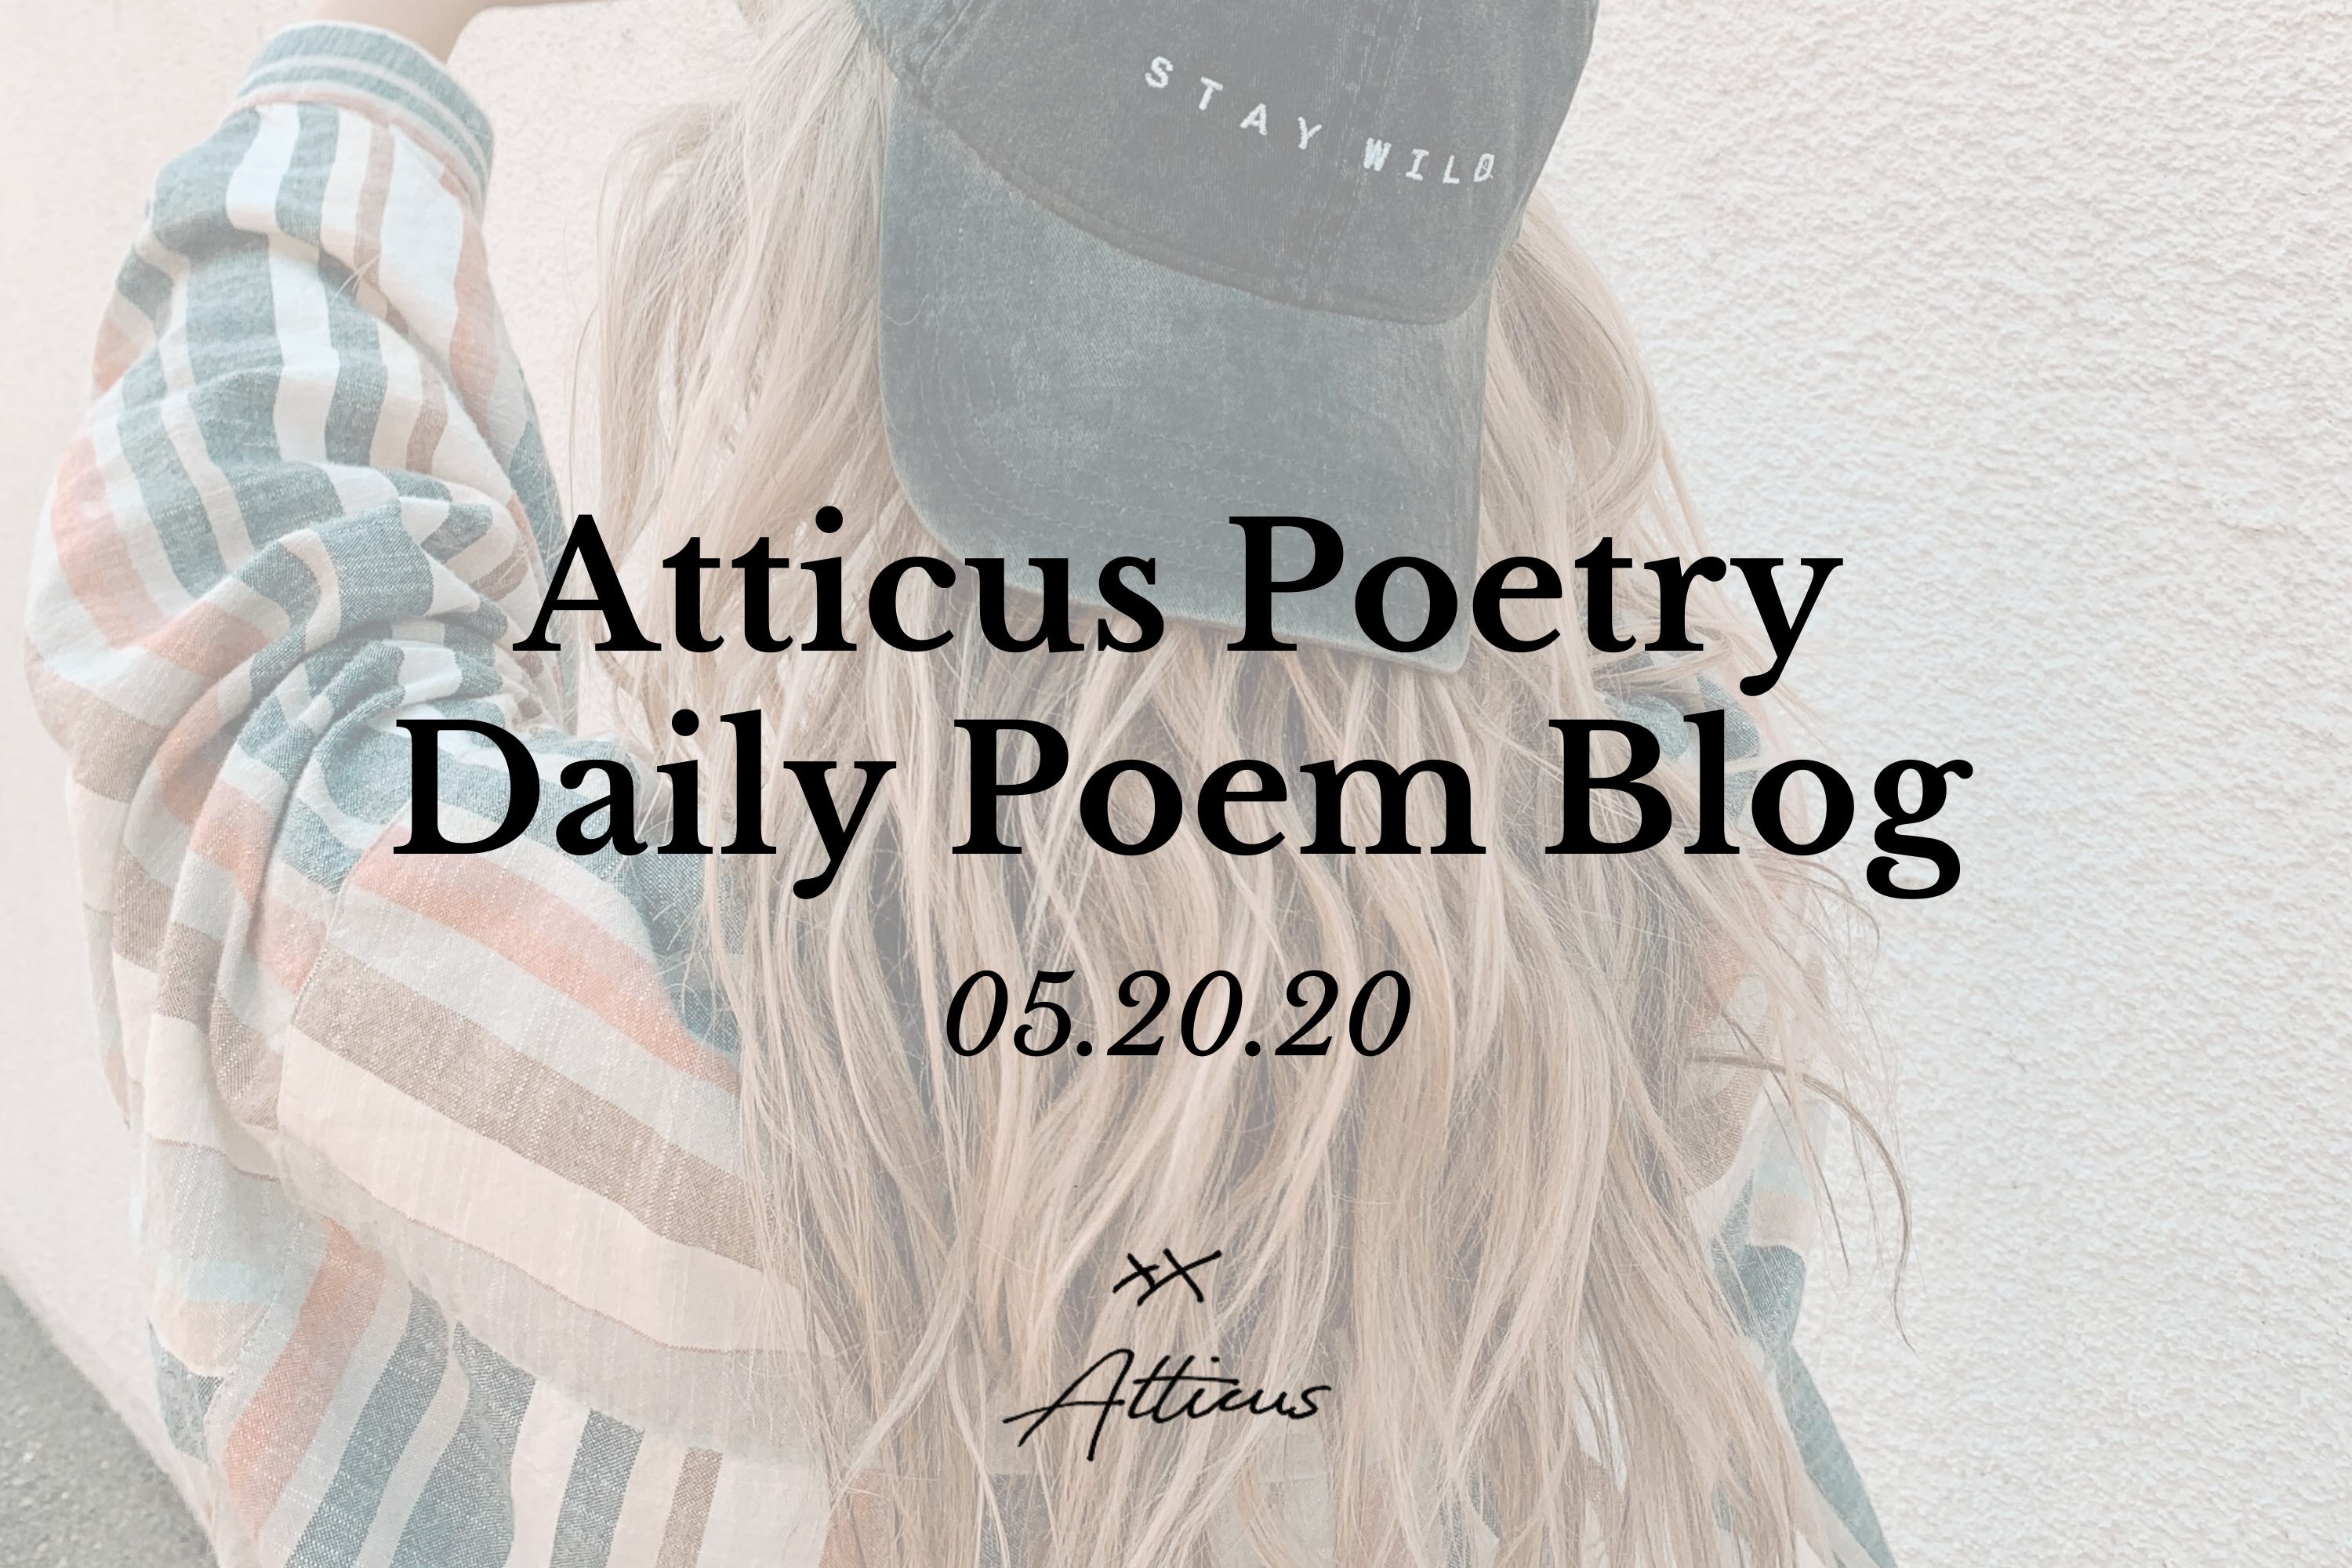 all-poetry-love-poems-short-poems-famous-poetry-atticus-poetry-blog